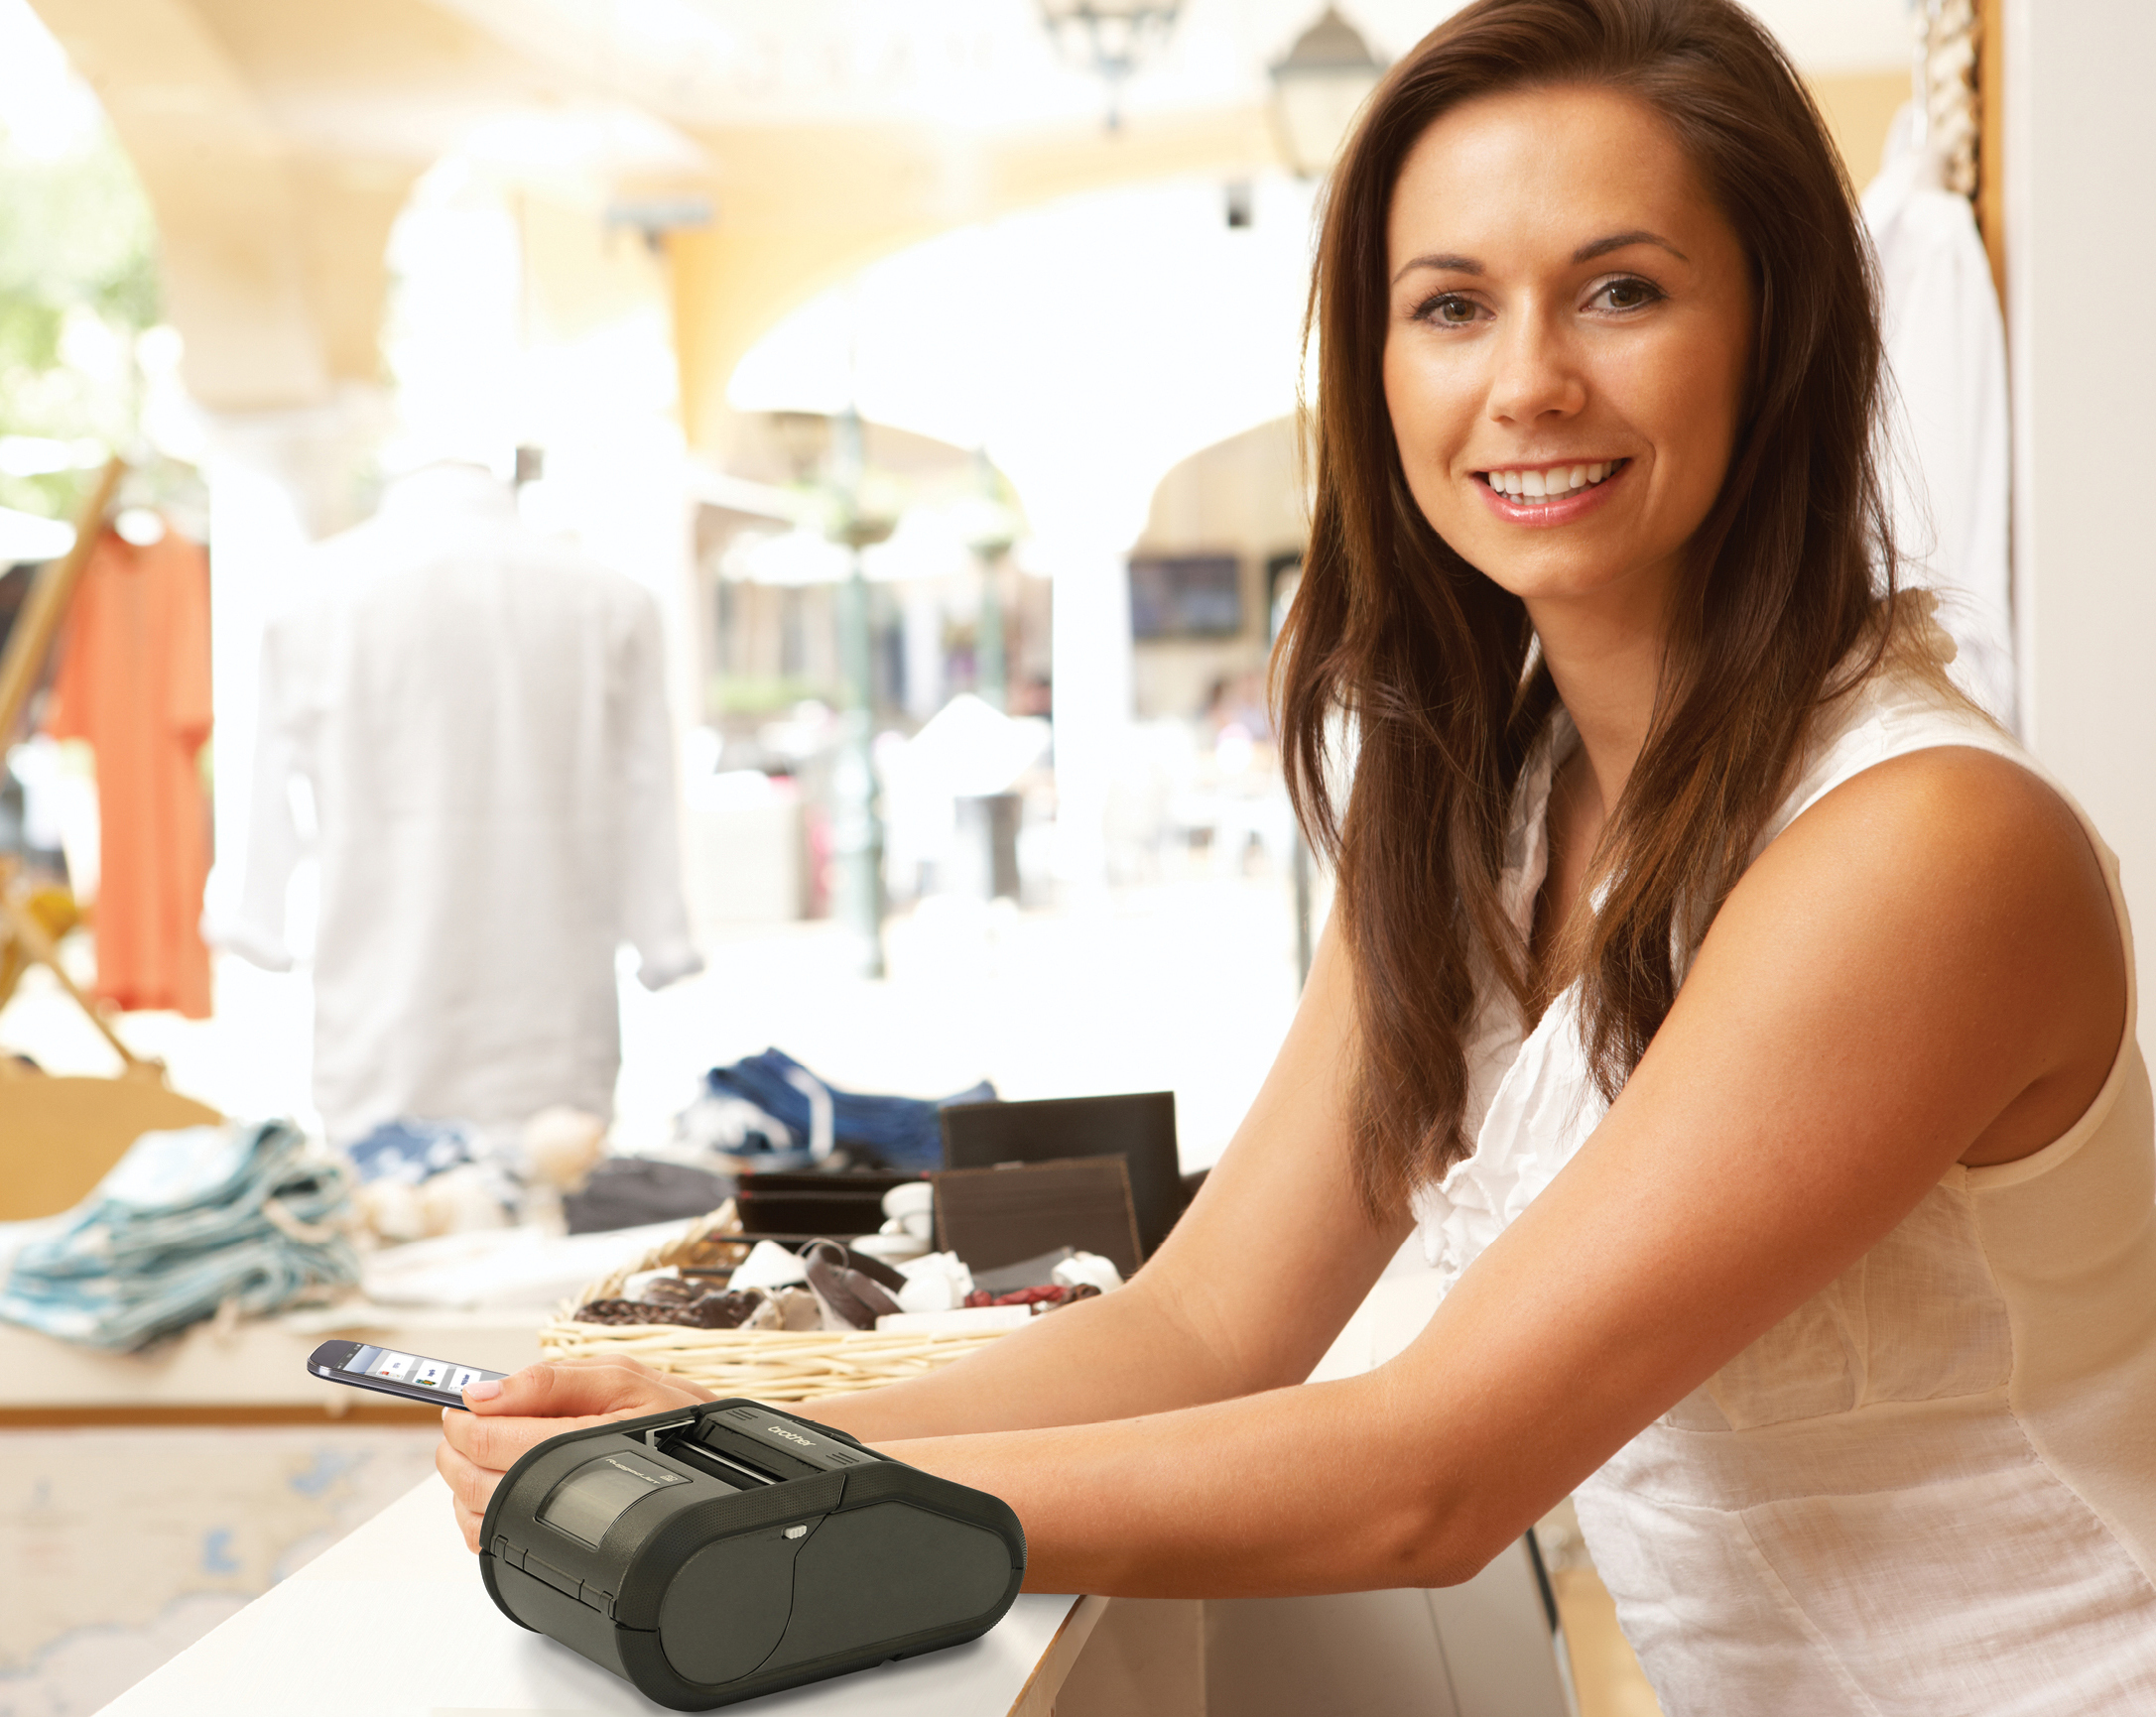 Lowering The Cost Of Point Of Sale Business Items